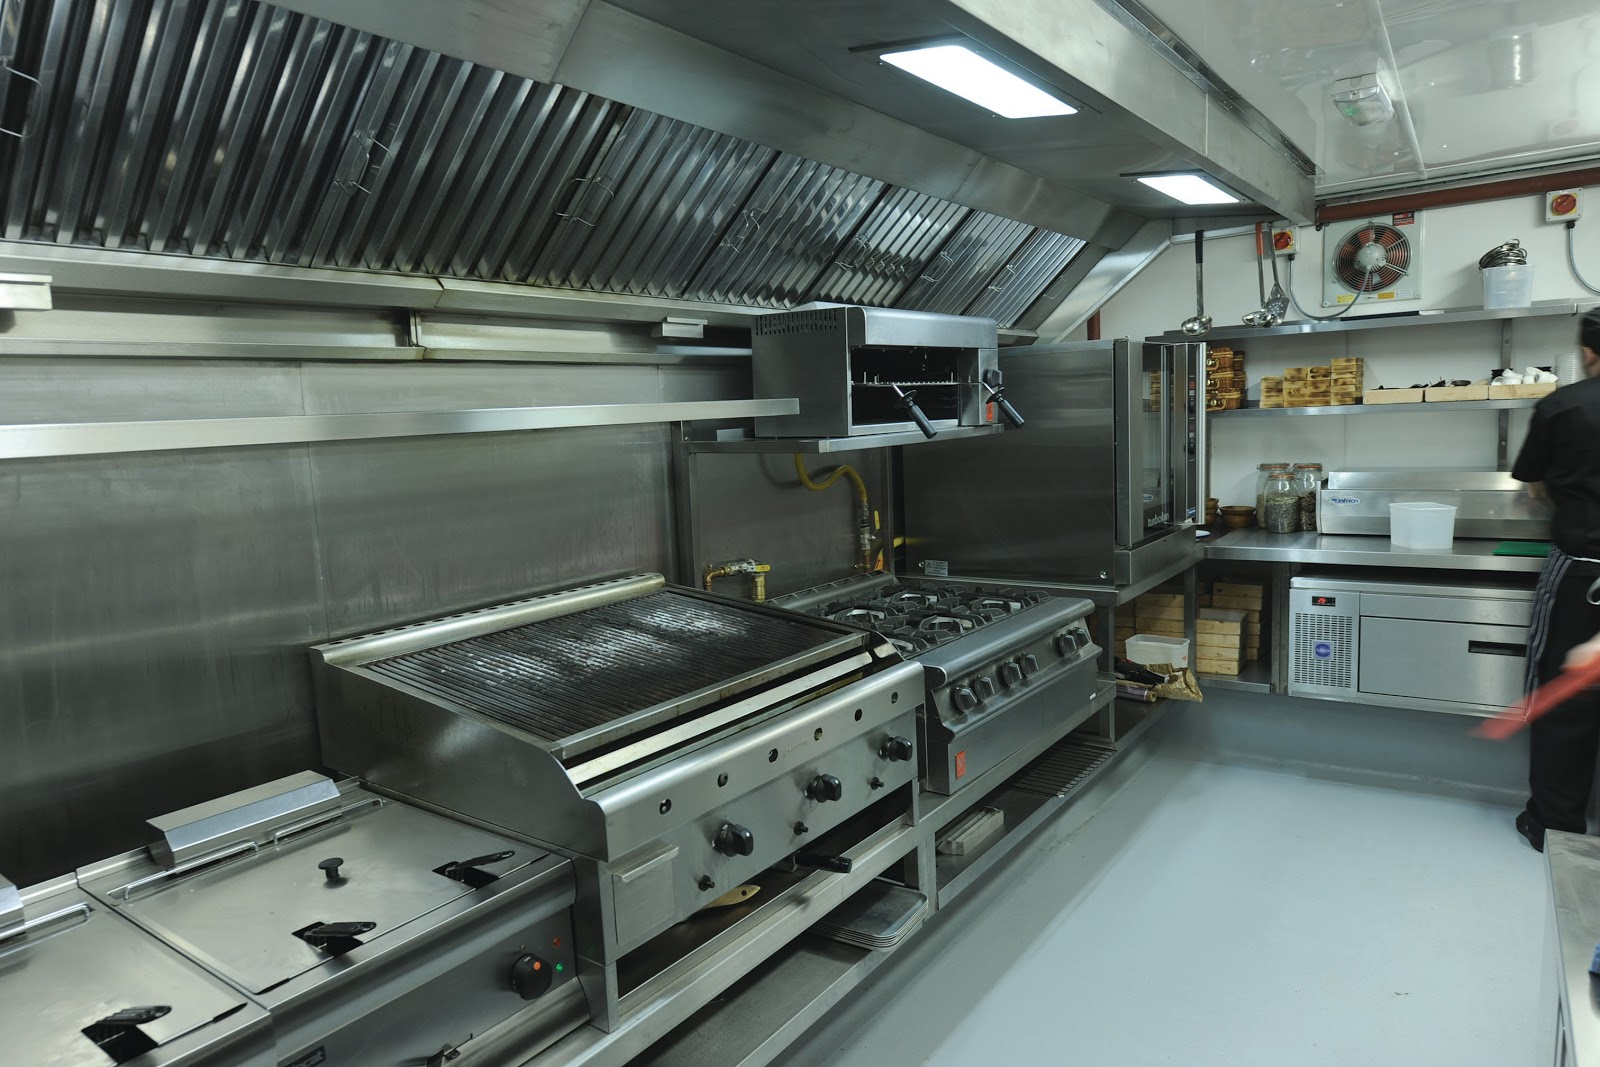 Monarch Catering Equipment Design Supply And Installation Of The Restaurant Kitchen And Bar At